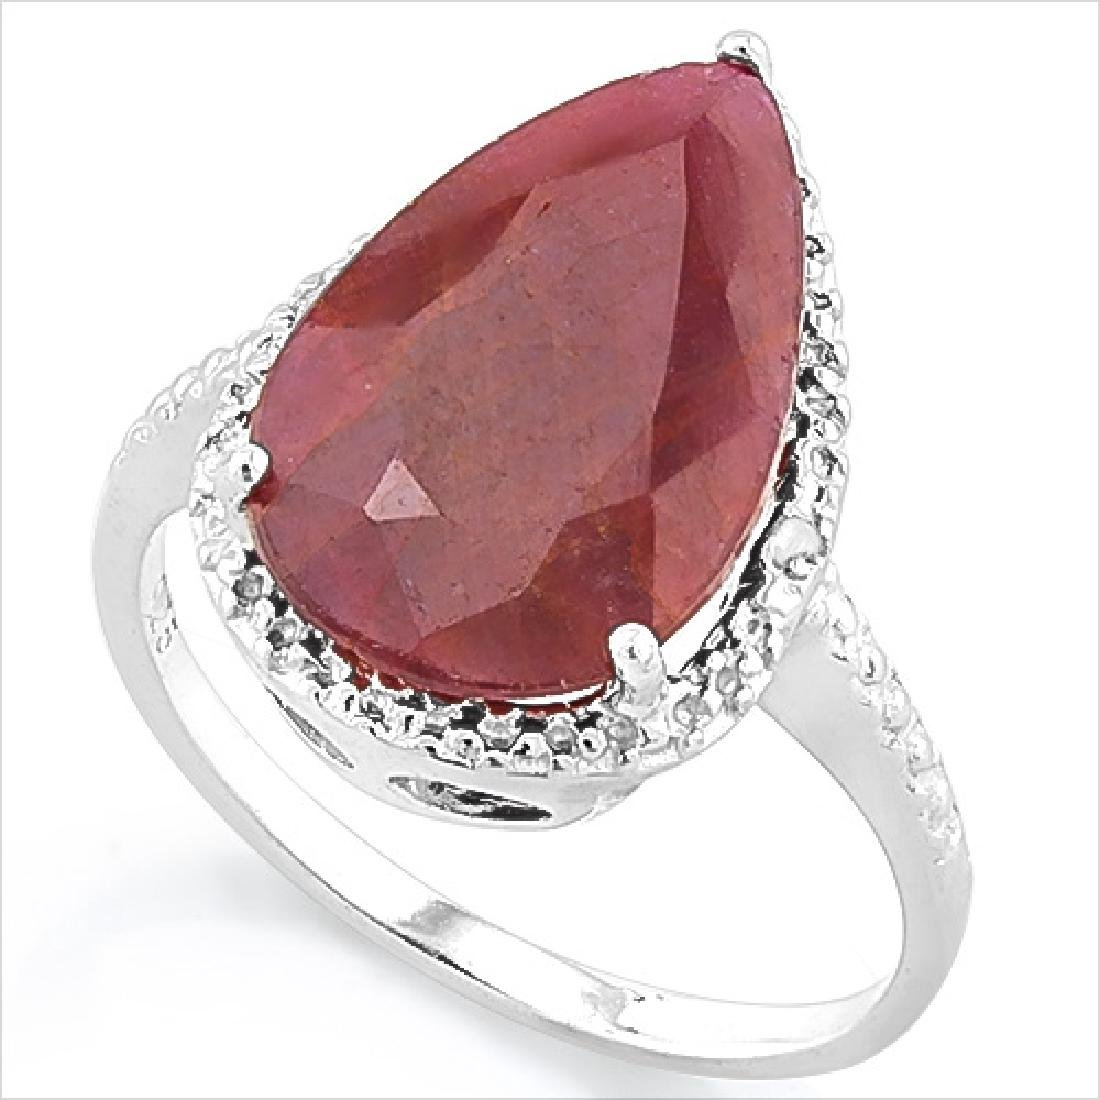 HUGE 6CT PEAR CUT GIANT RUBY/DIAMOND STERLING RING